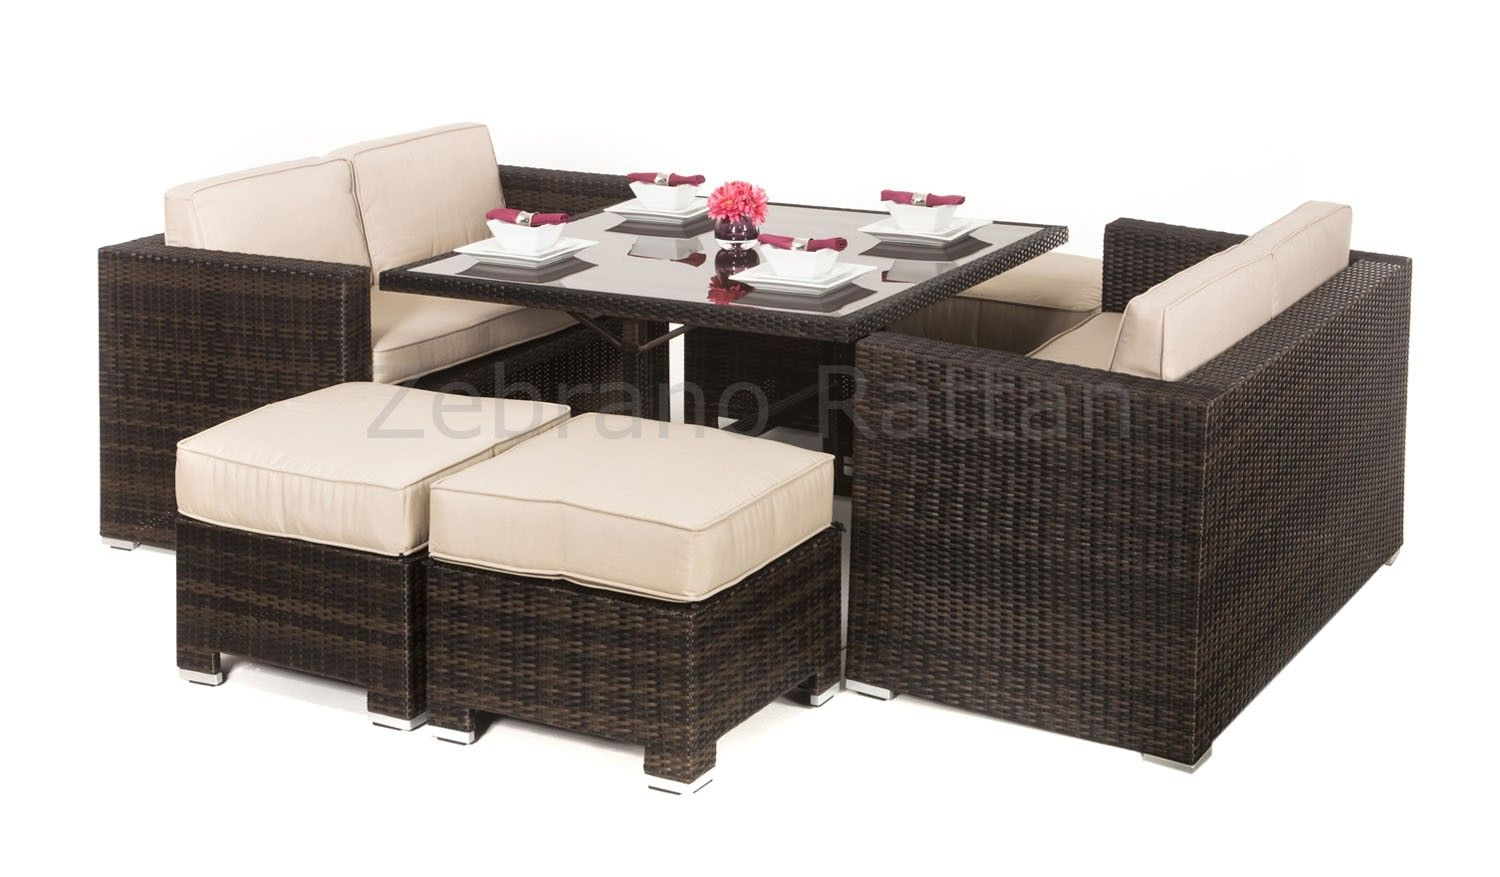 Outdoor Rattan Garden Furniture available from www